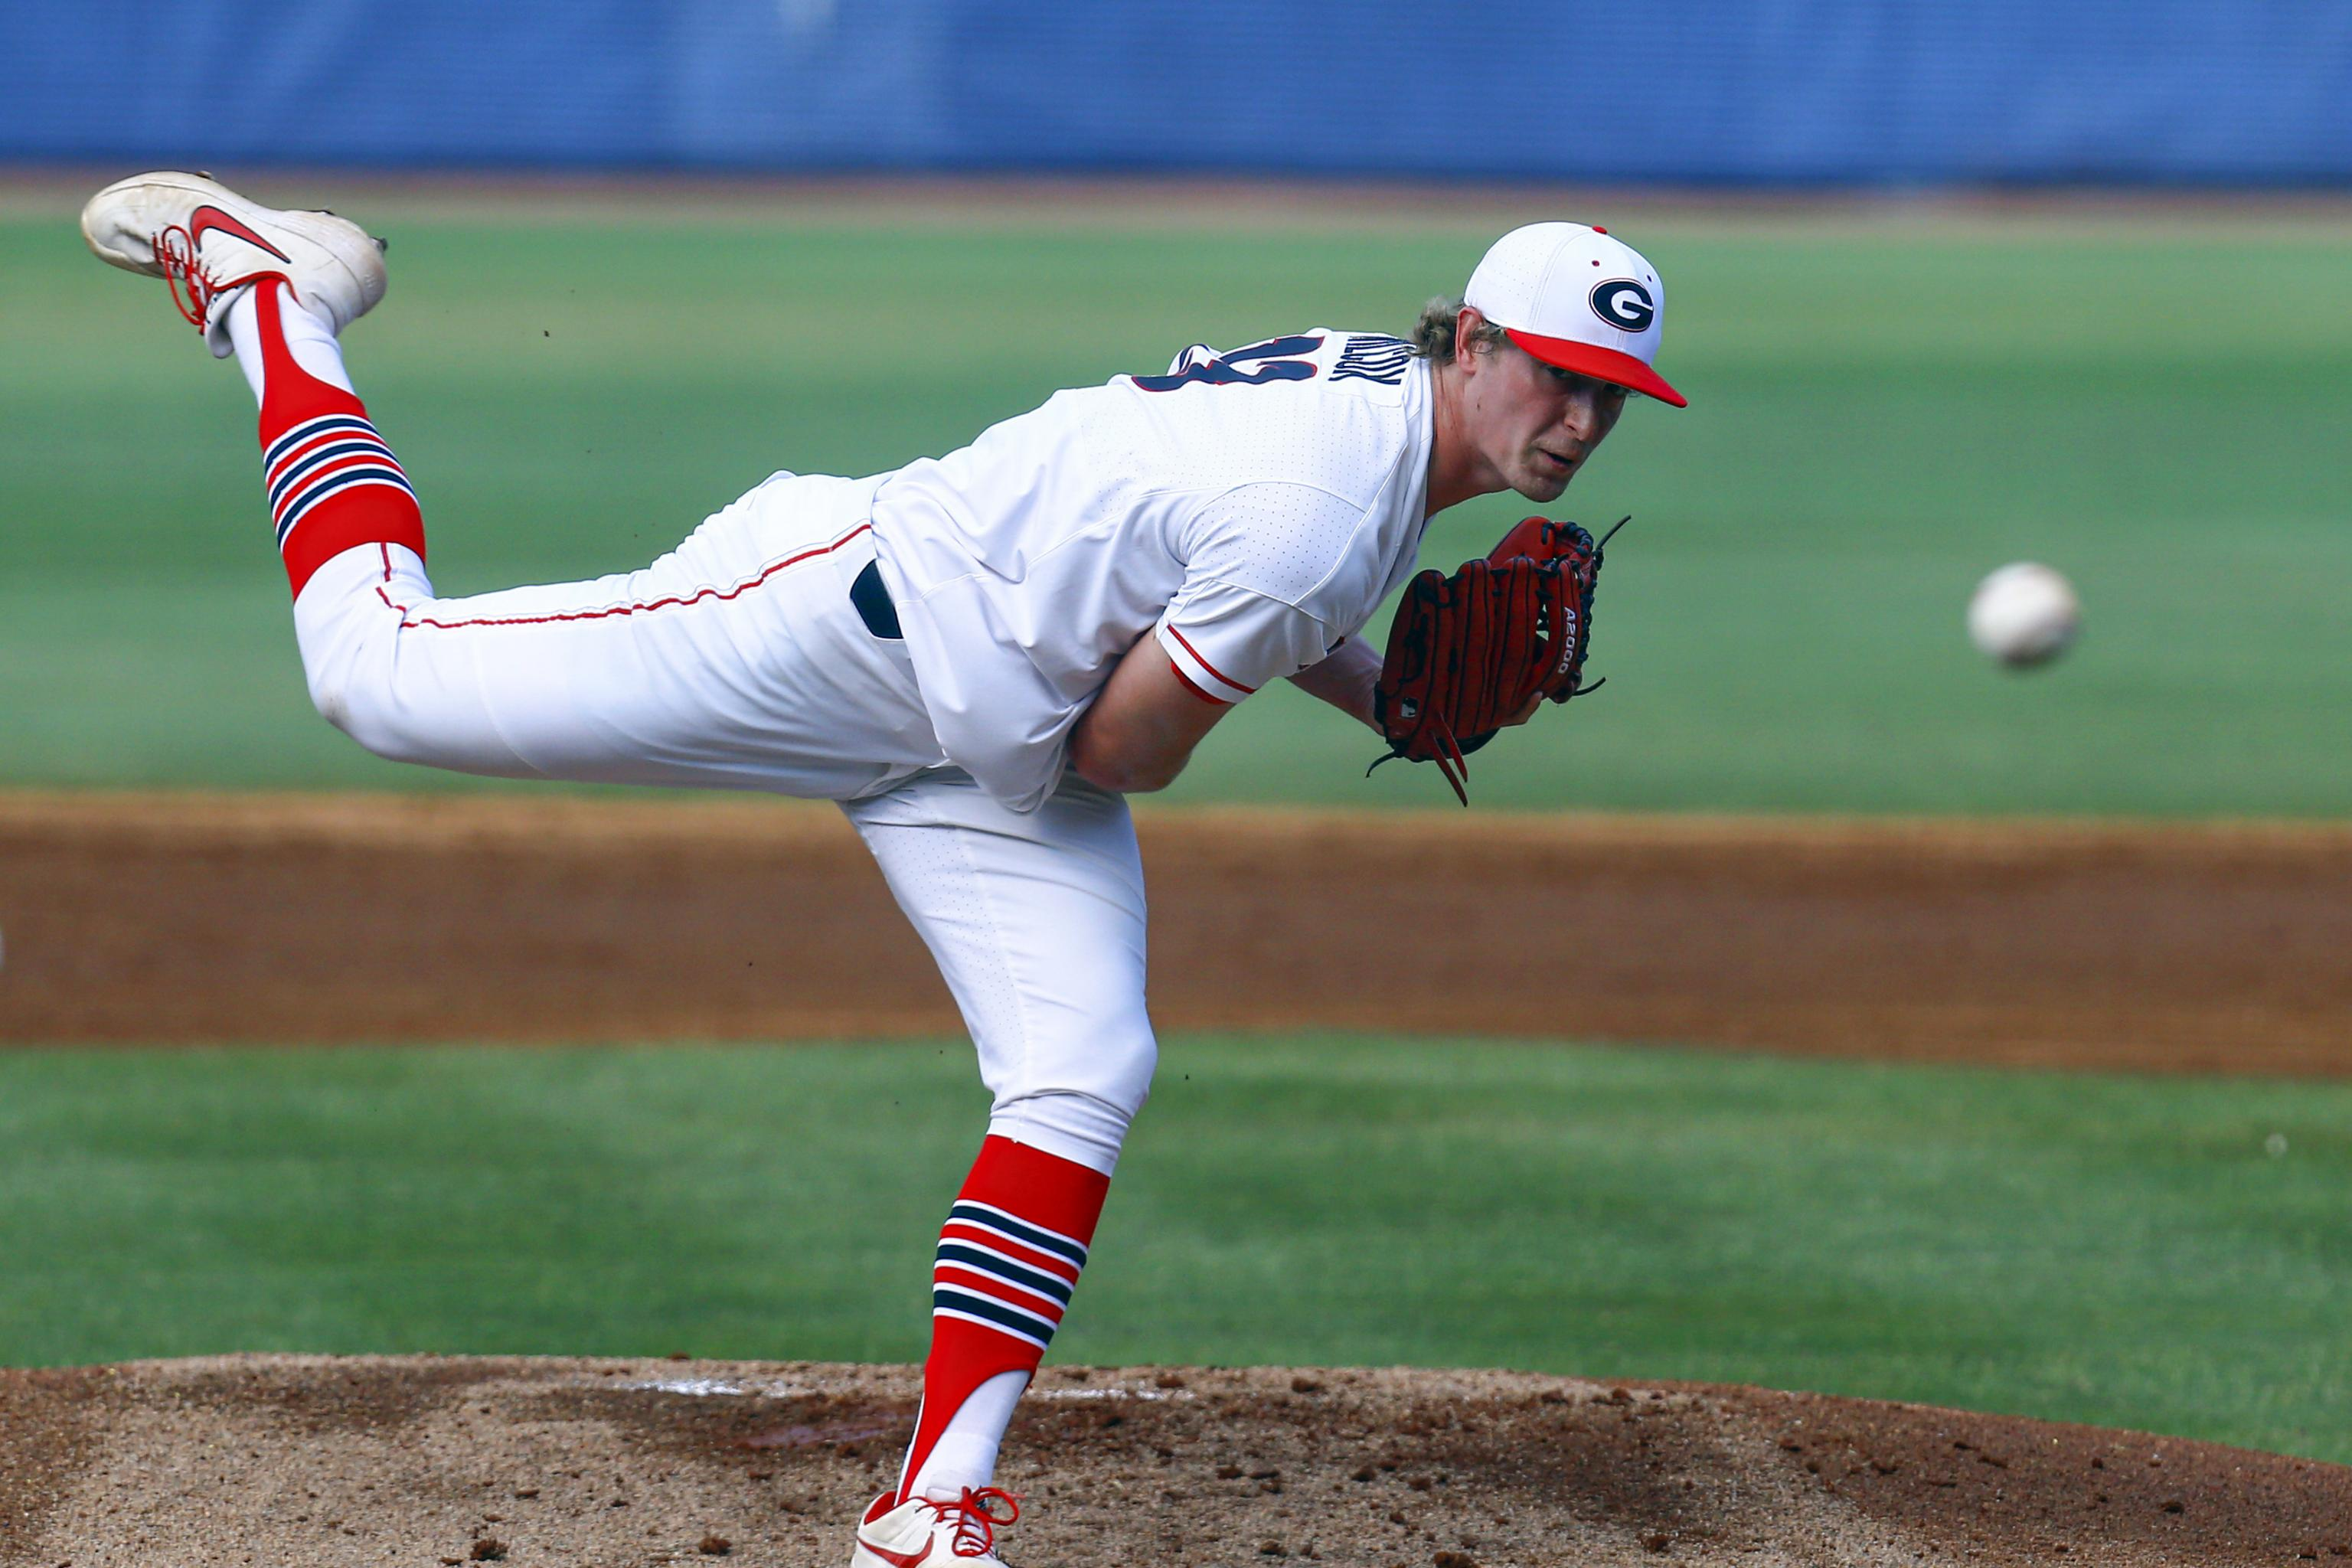 mlb best pitchers 2020 2020 MLB Mock Draft: Early Predictions for Top 1st Round Baseball